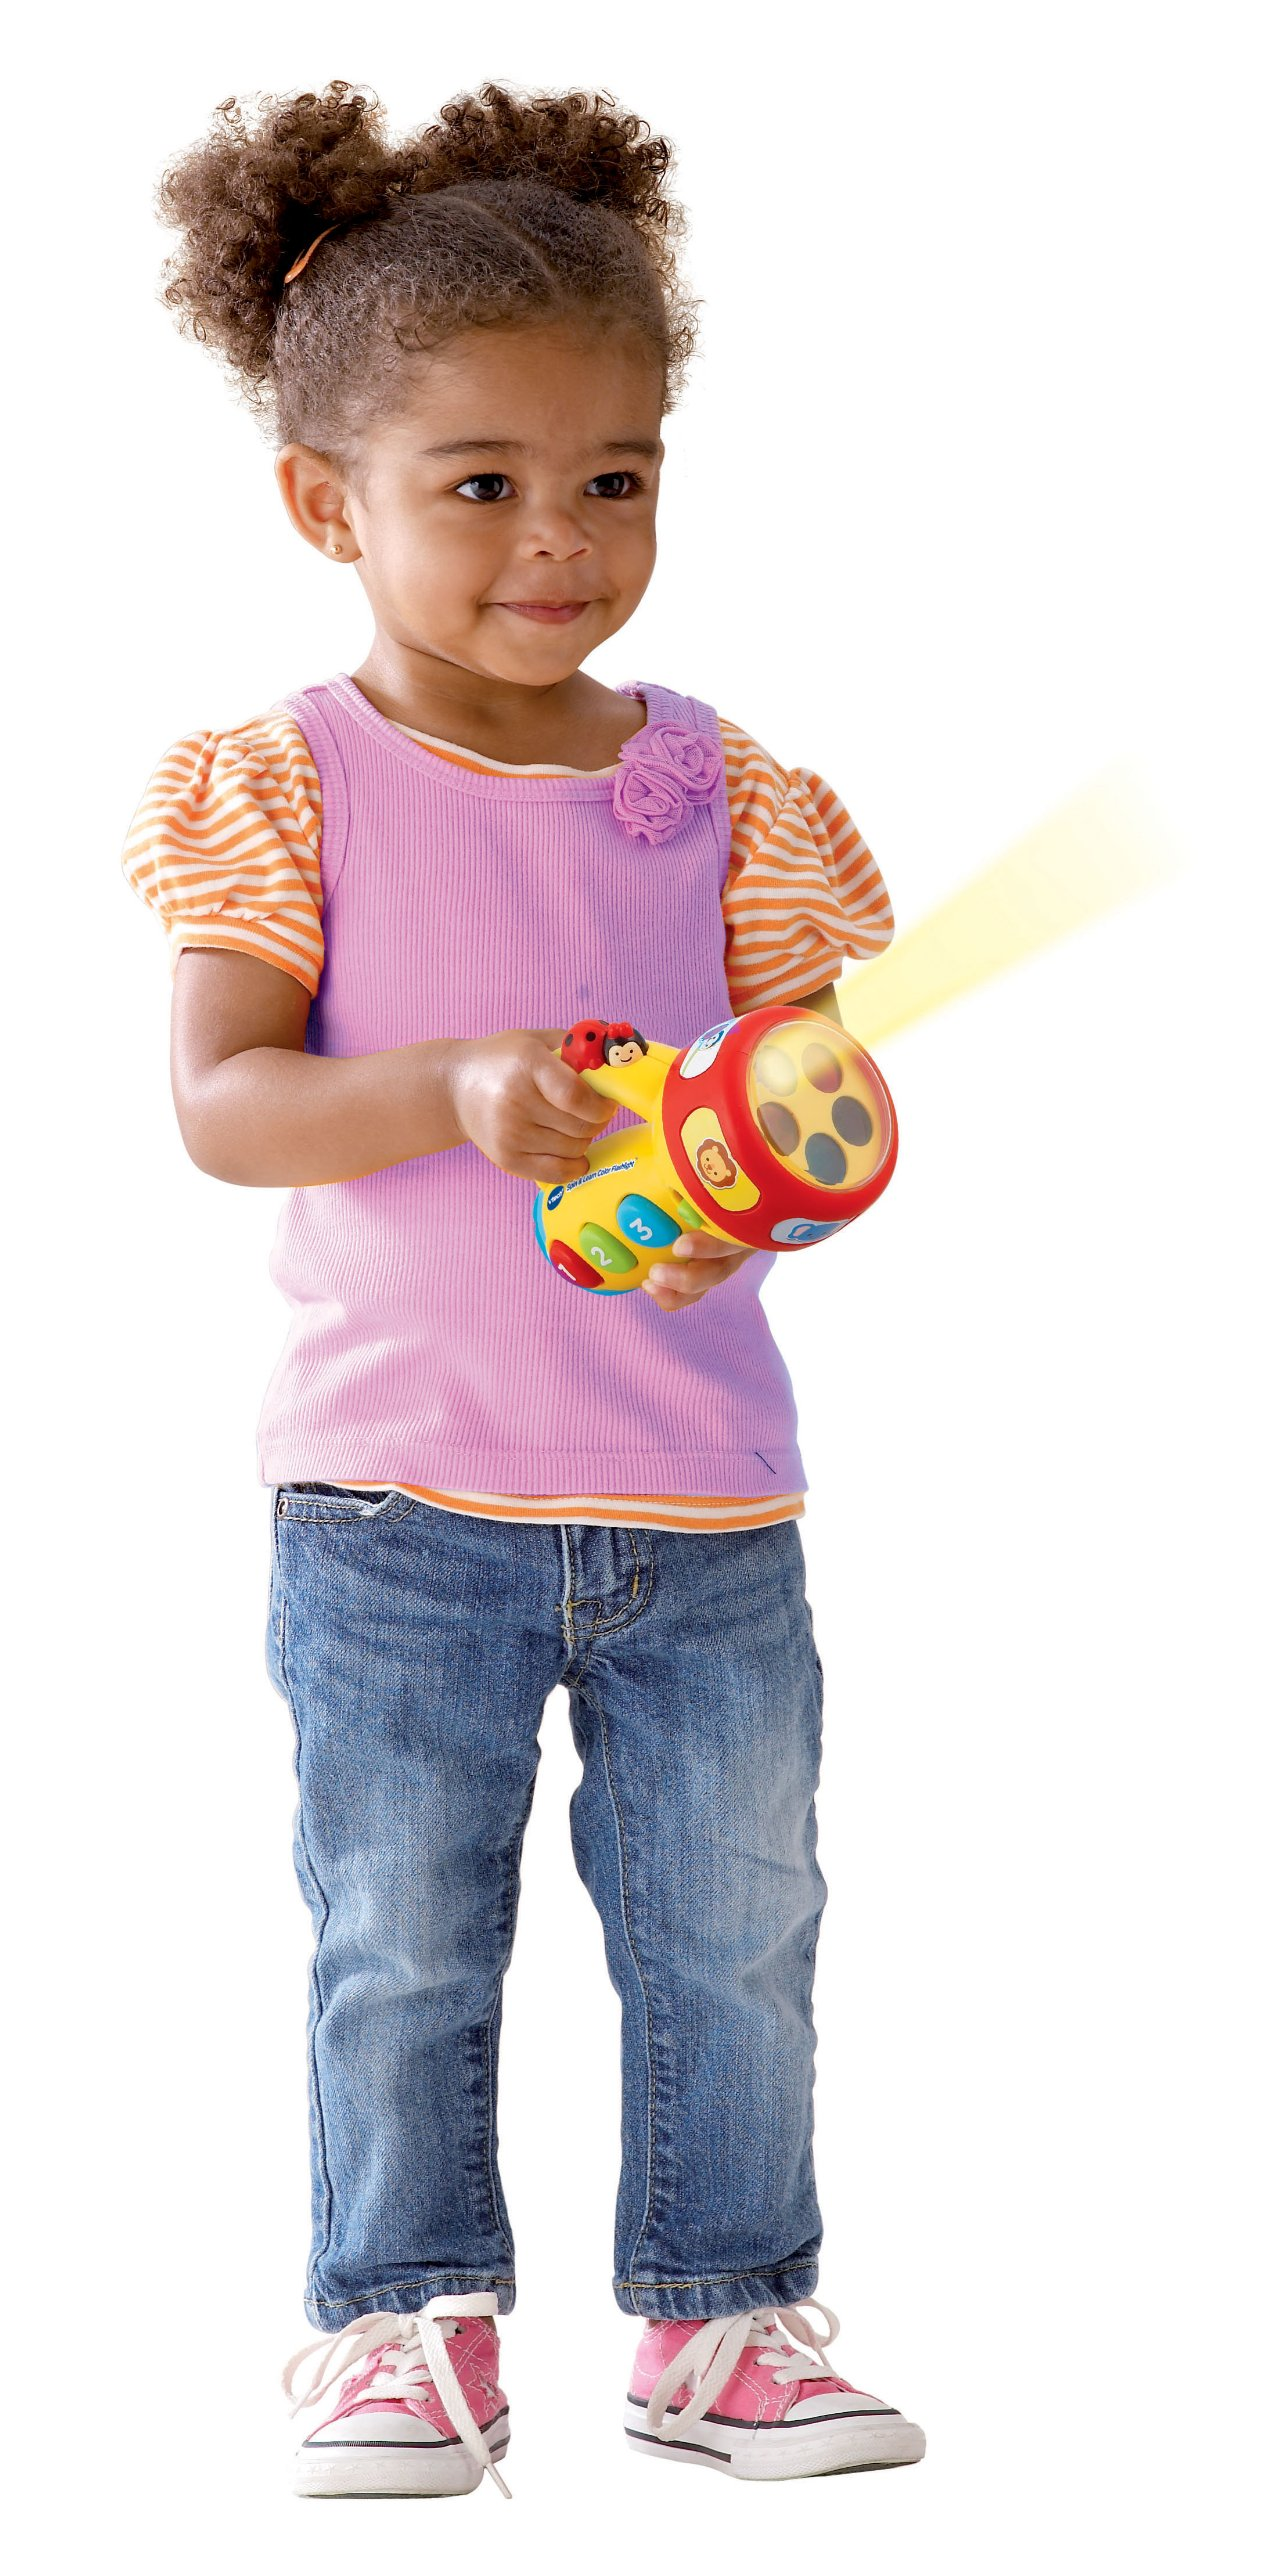 VTech Spin and Learn Color Flashlight, Yellow by VTech (Image #3)